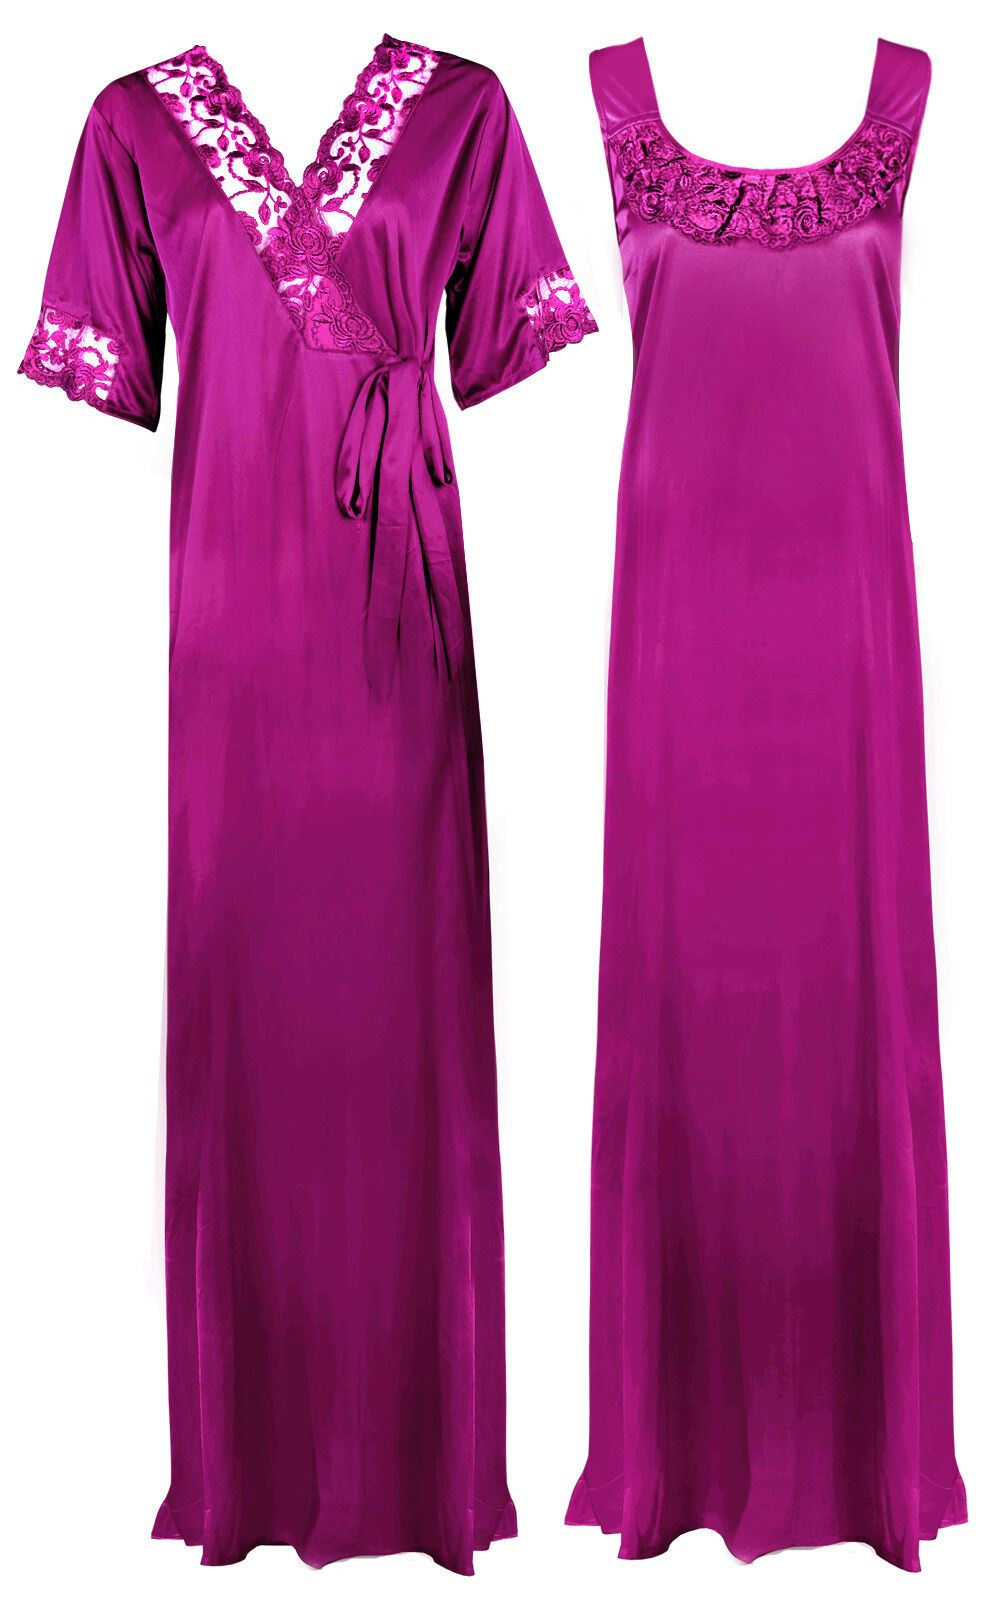 Women Plus Size 2 Pcs Satin Nightdress - XL. 2XL LIGHT PURPLE Hautie Nightfashion